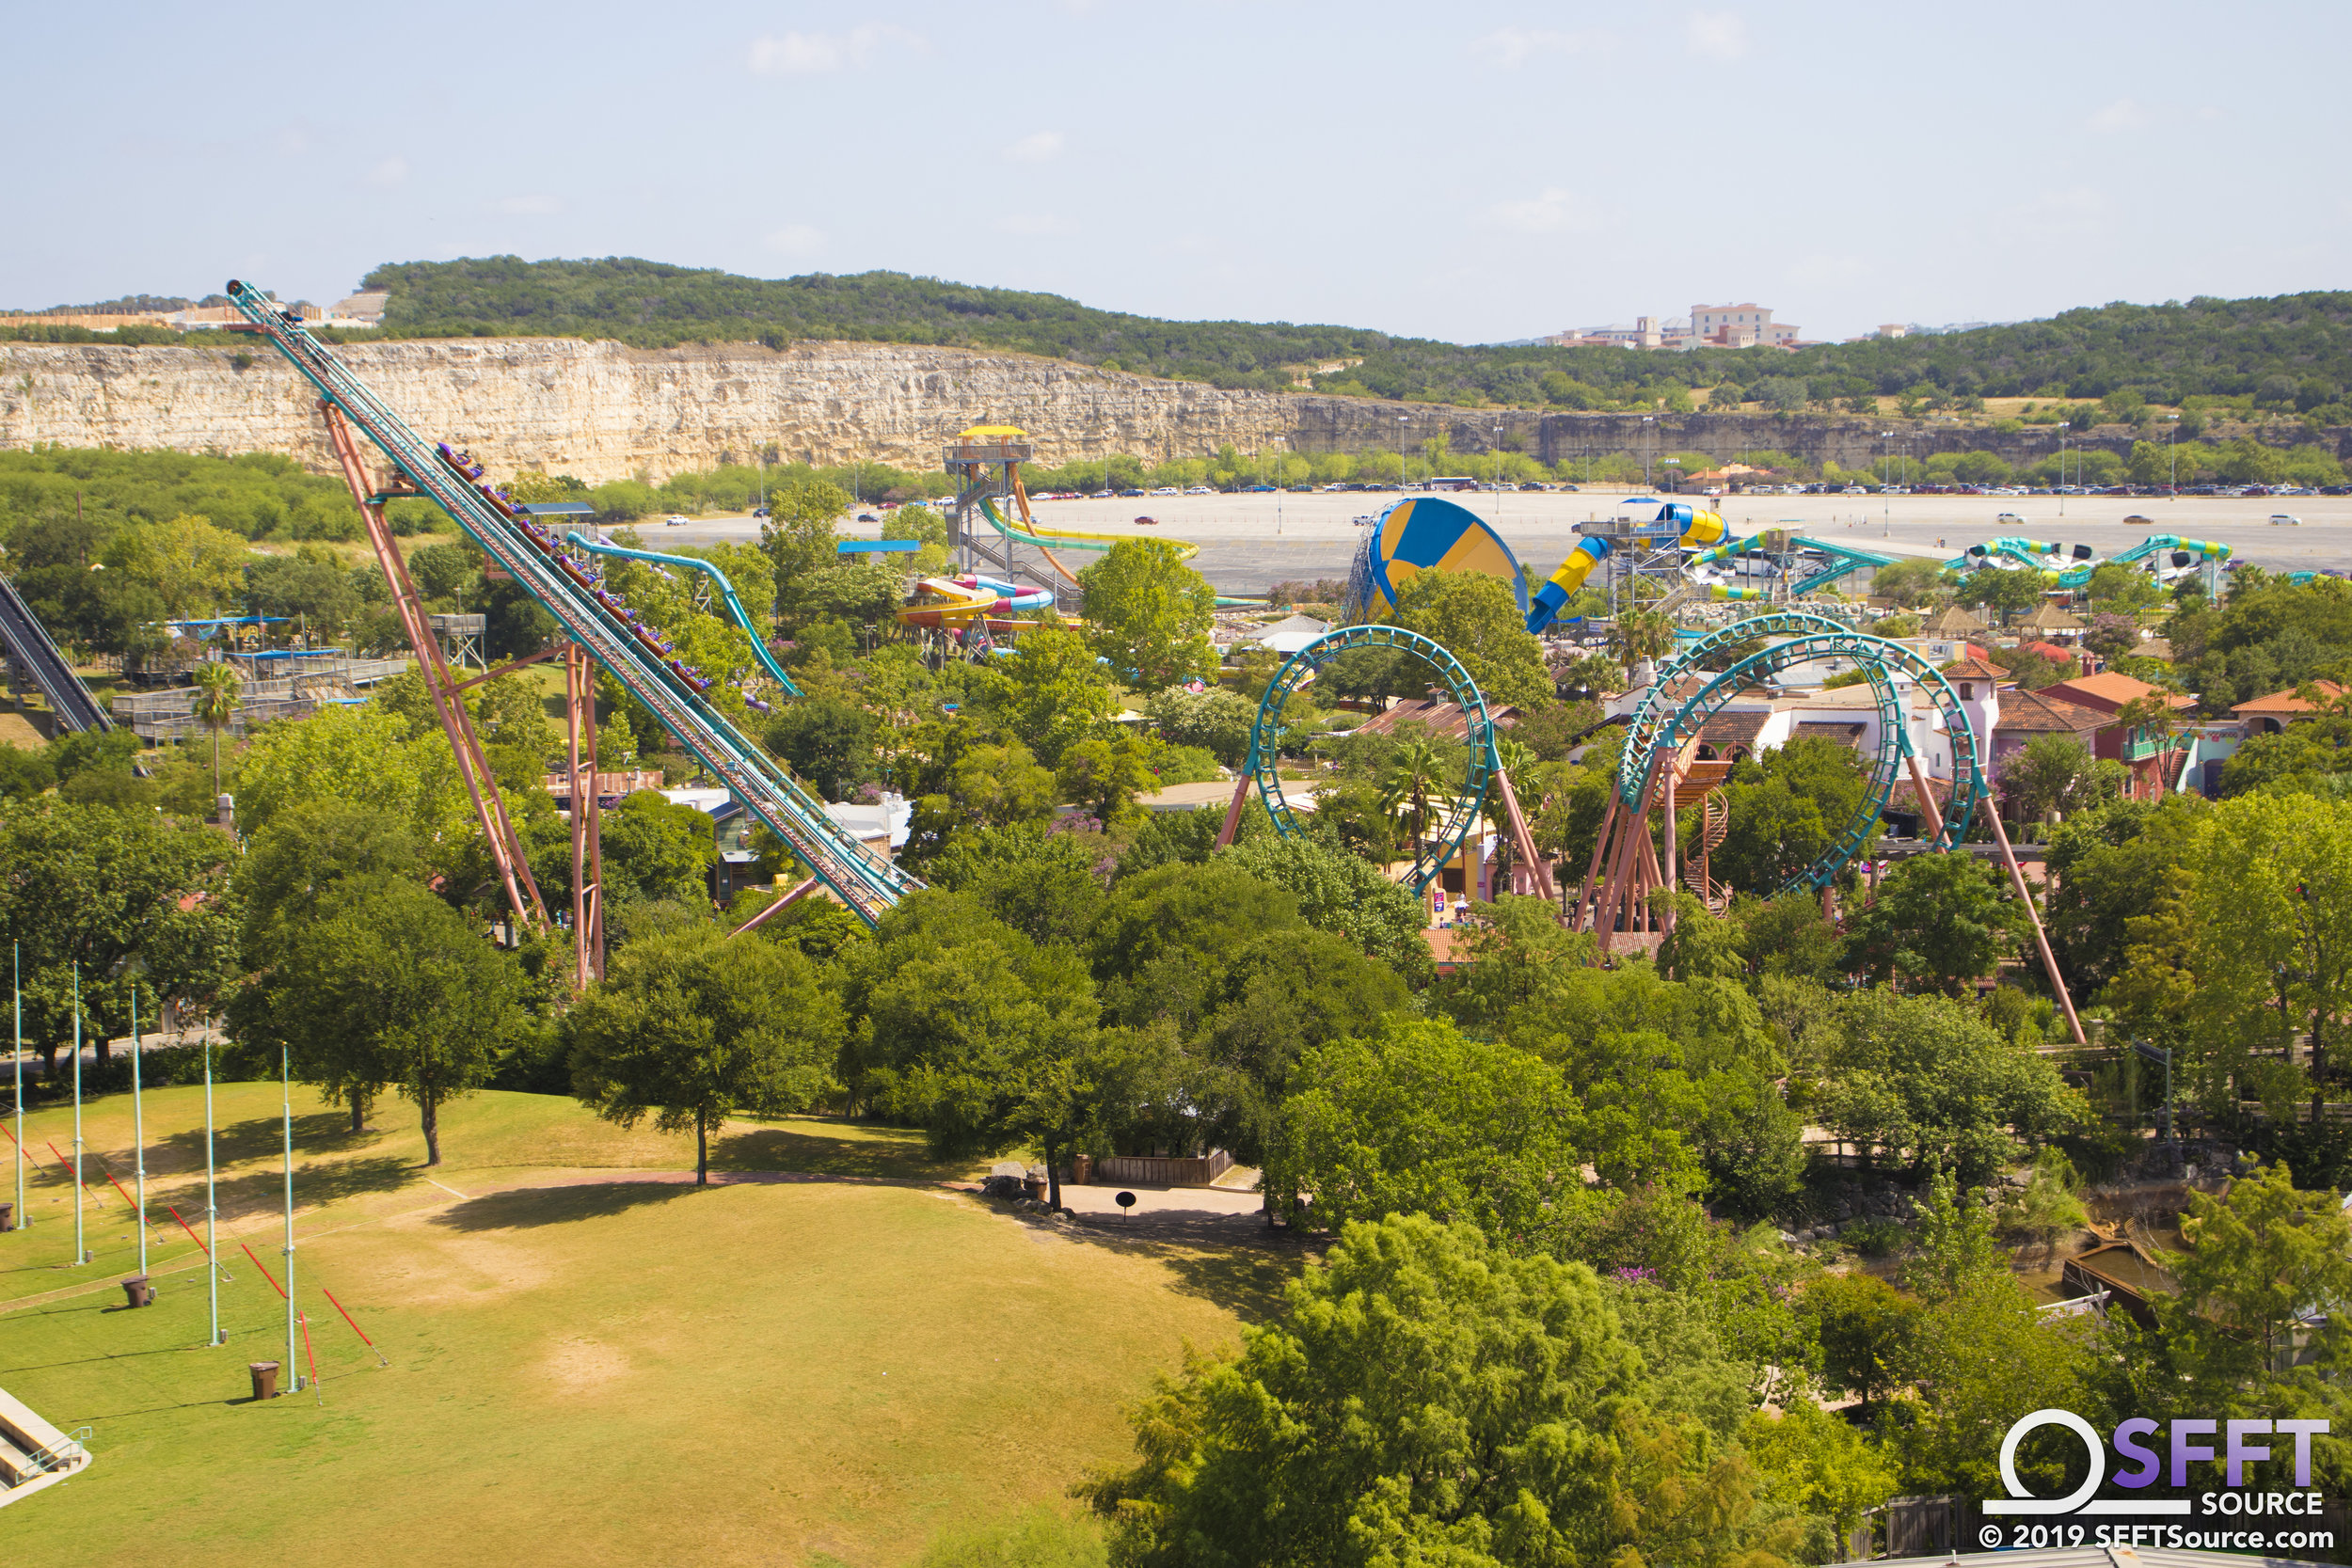 A view of Boomerang from atop the quarry wall.